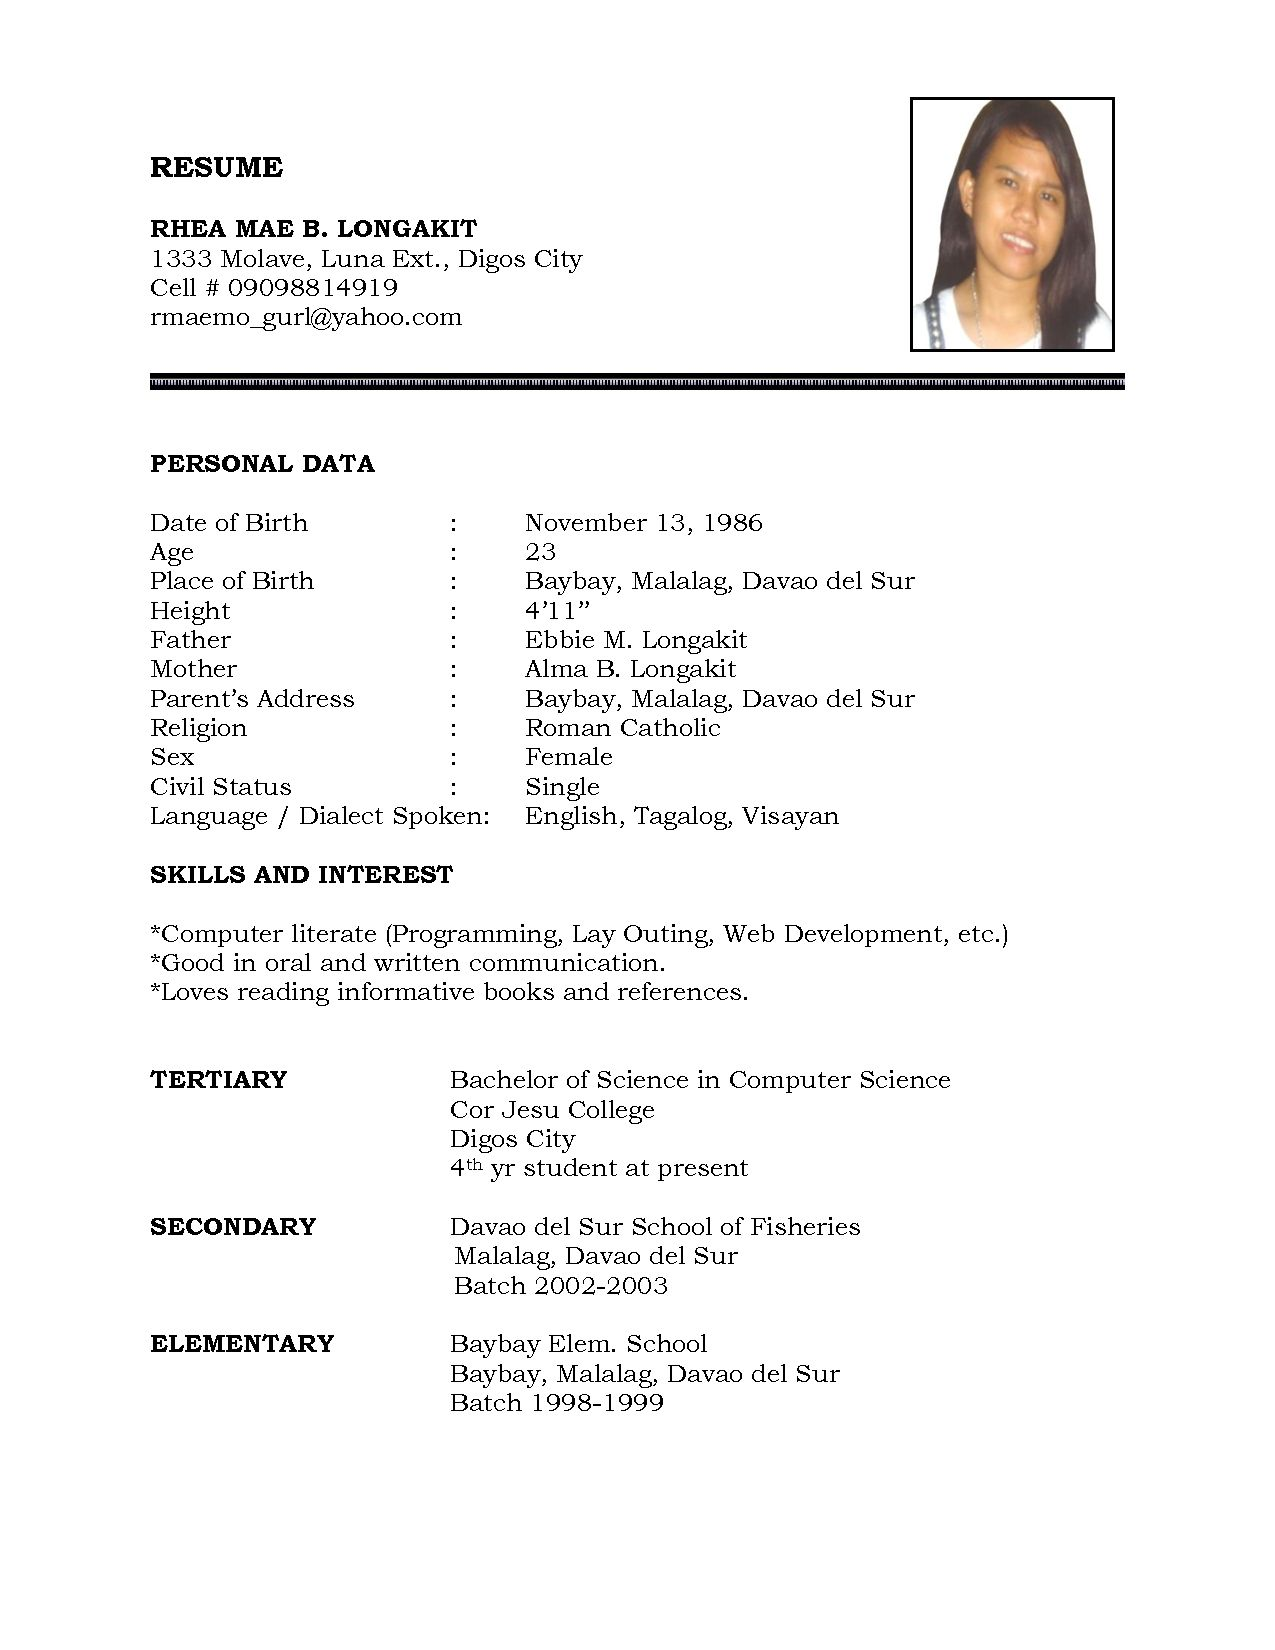 Download Free Blank Resume Form Template Printable Biodata ...